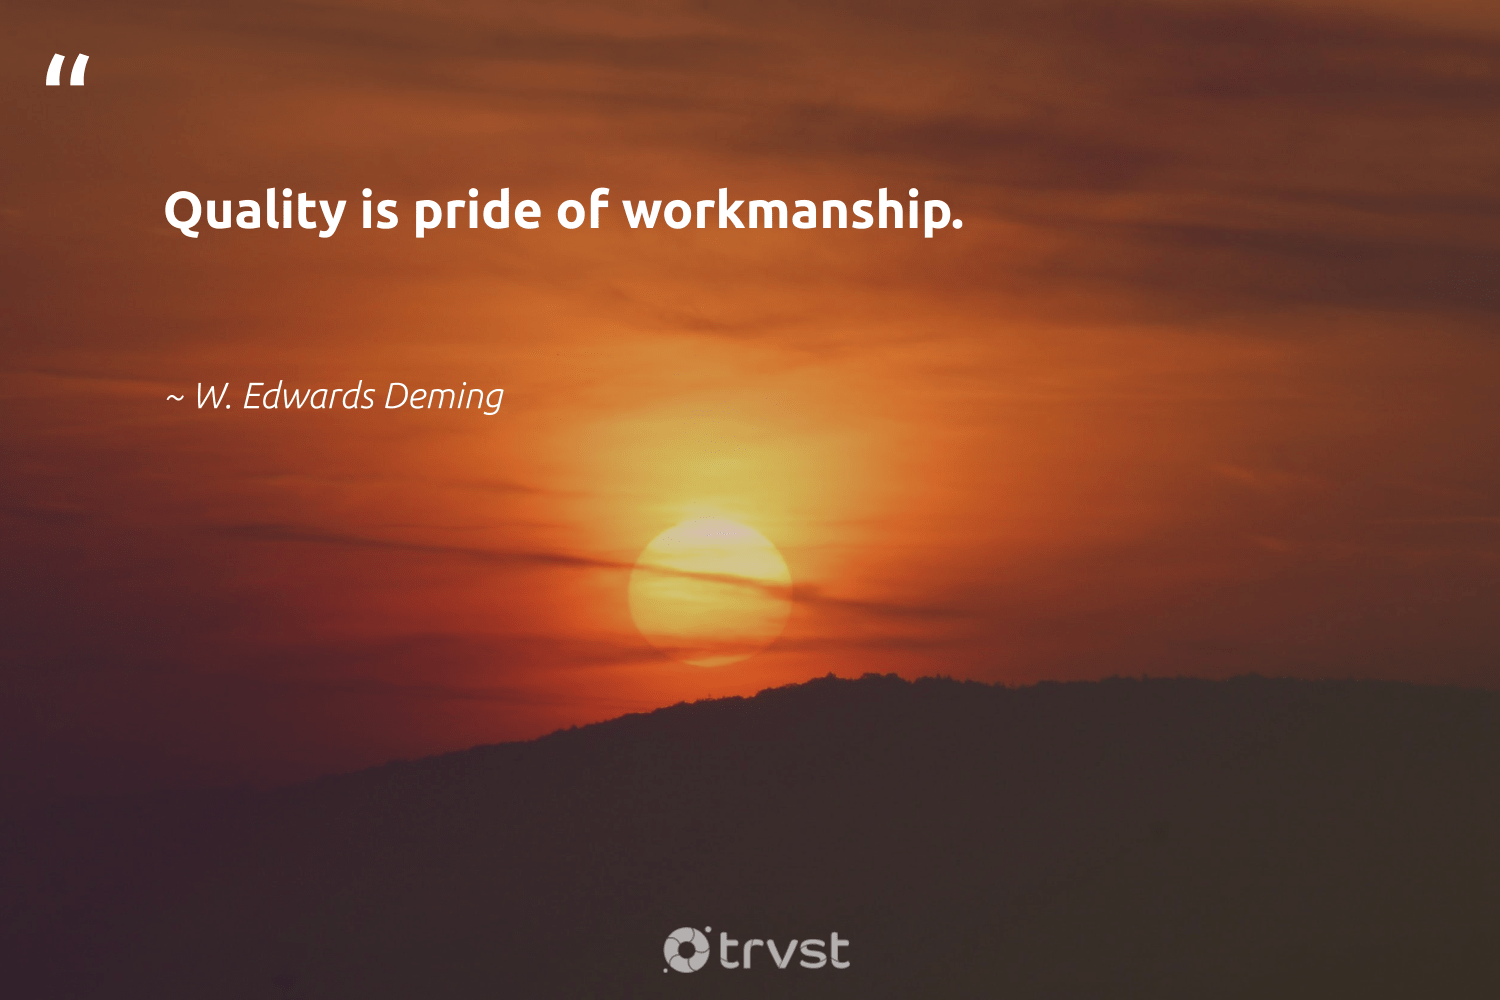 """Quality is pride of workmanship.""  - W. Edwards Deming #trvst #quotes #pride #softskills #dotherightthing #futureofwork #takeaction #begreat #dosomething #nevergiveup #beinspired #gogreen"